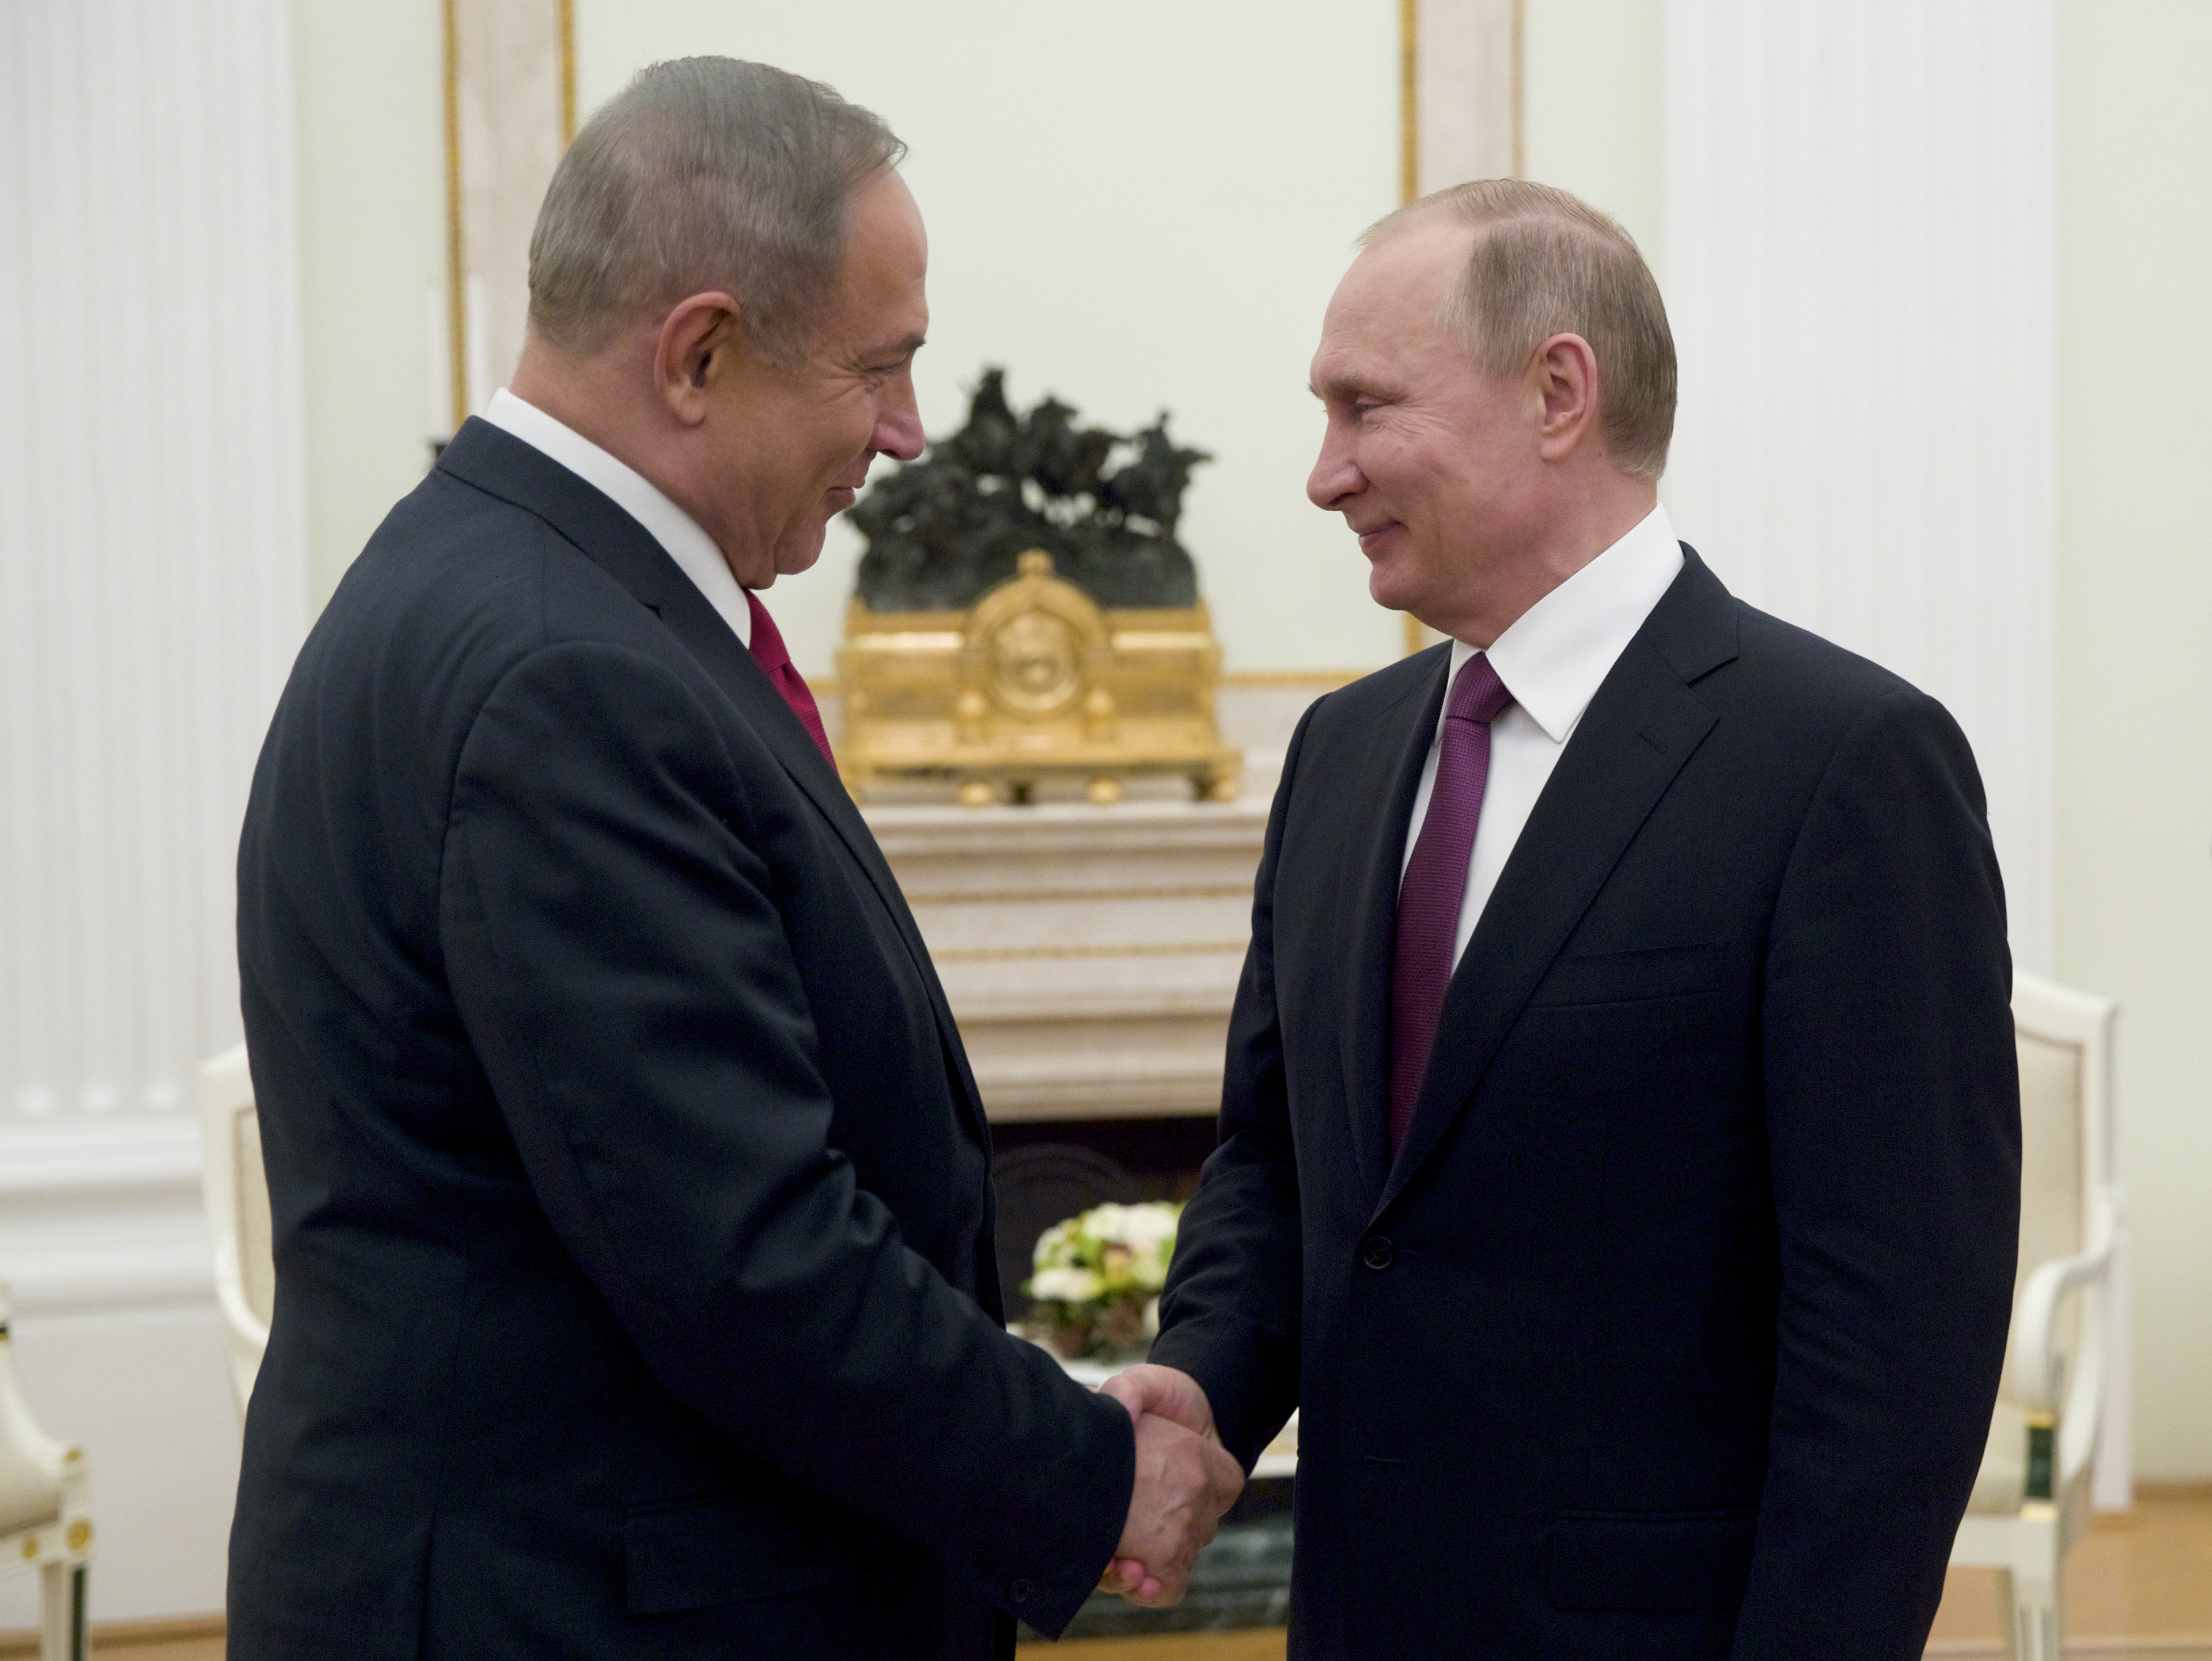 Russian President Vladimir Putin (R) shakes hands with Israeli Prime Minister Benjamin Netanyahu in Moscow, Russia on March 9, 2017. (AP Photo/Pavel Golovkin, pool)